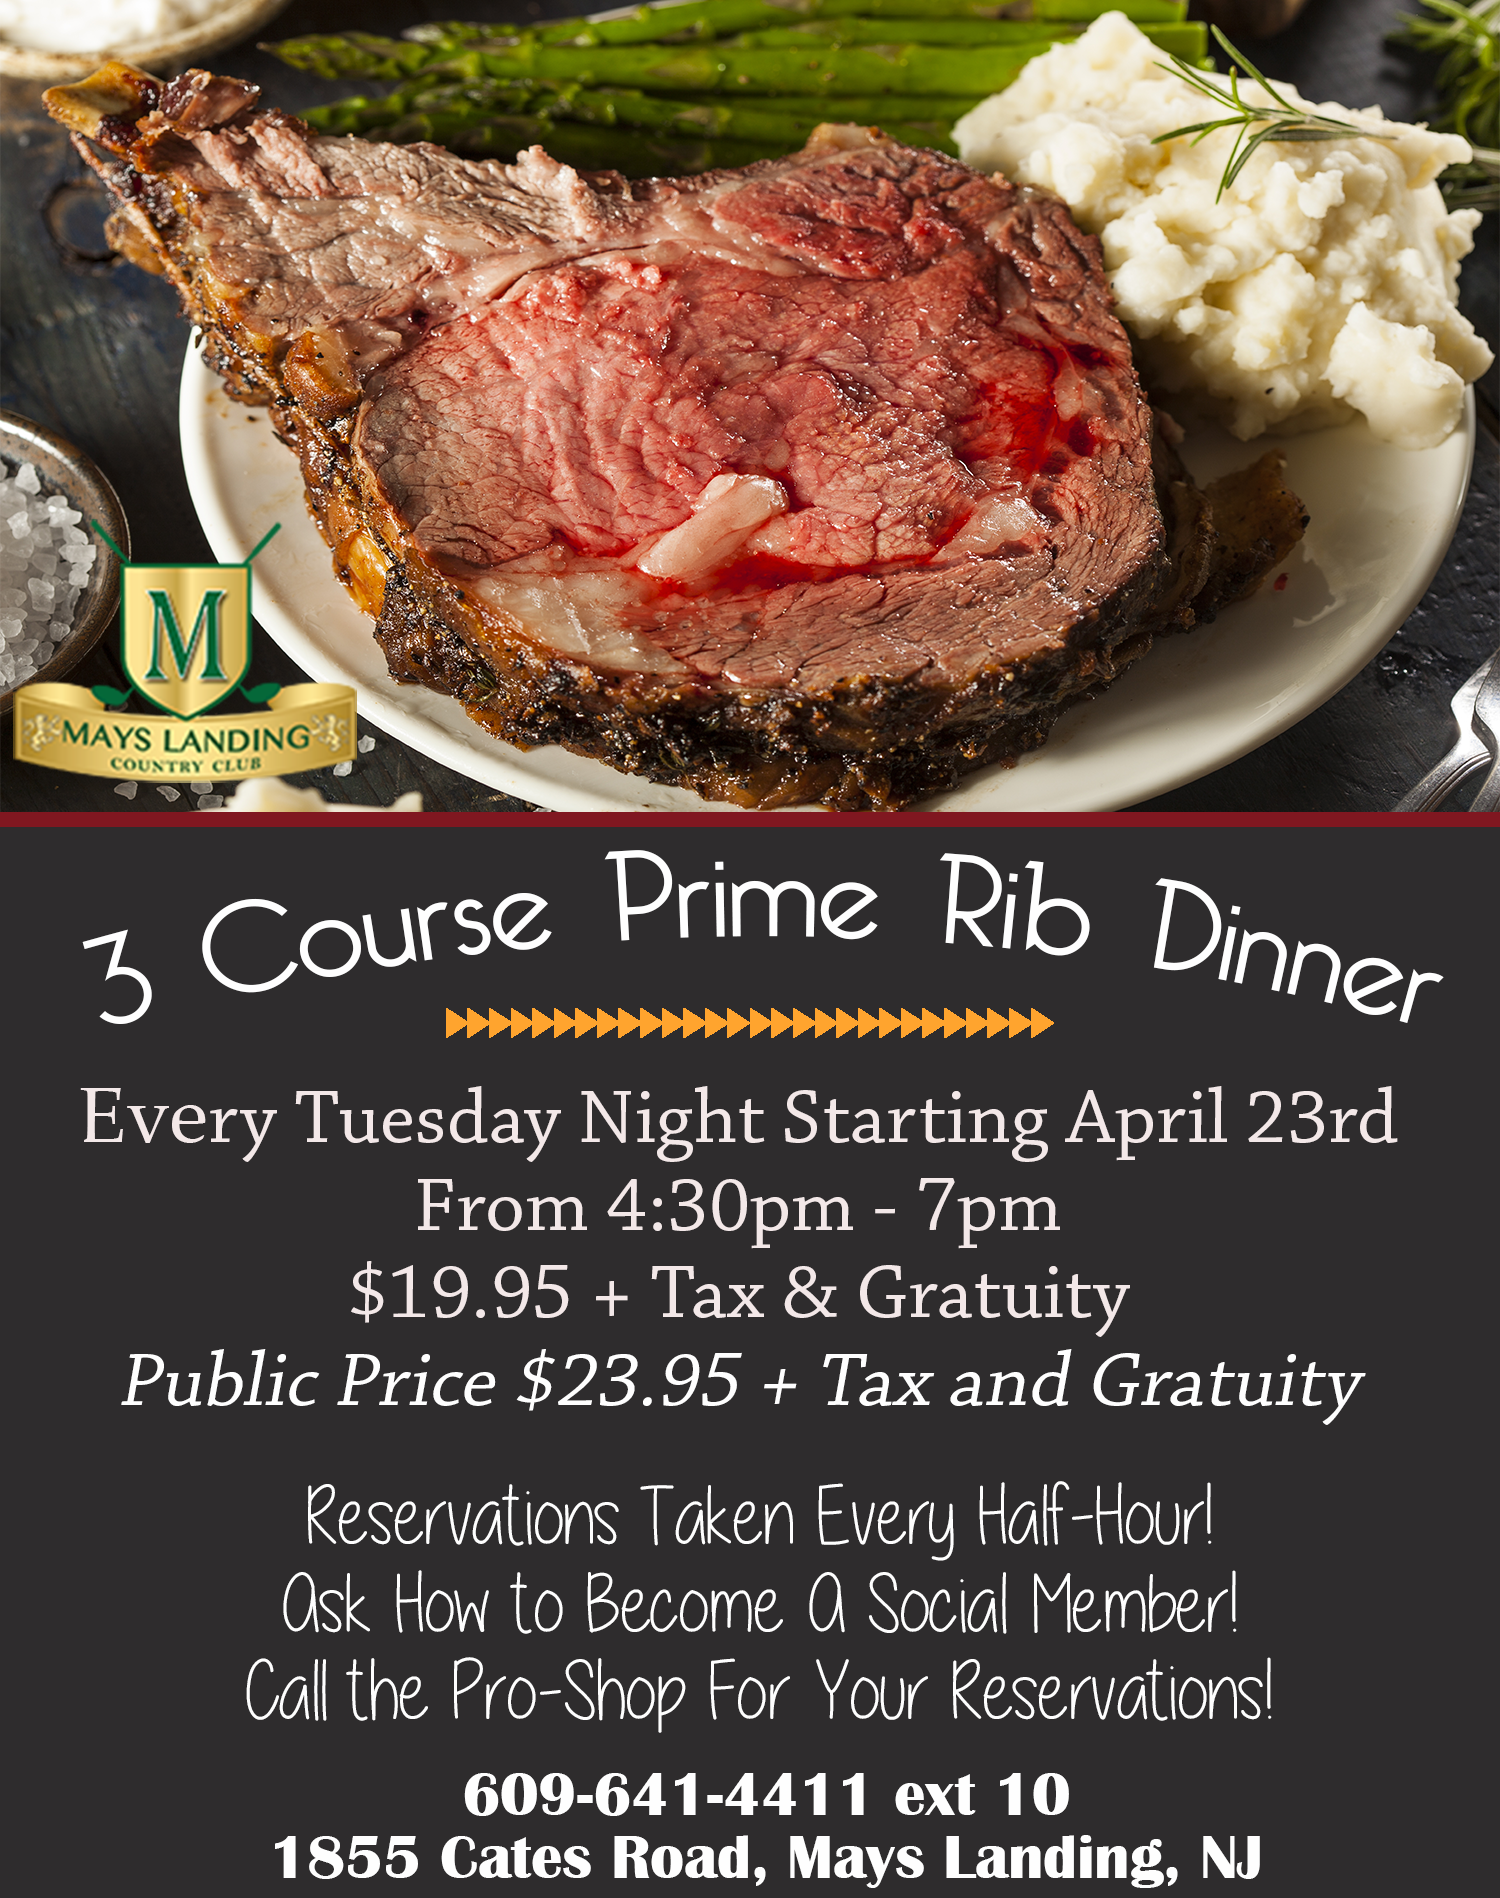 3 Course  Prime Rib Dinner; Every Tuesday Night  Starting April 23rdFrom 4:30pm - 7pml ; Members Price $19.95  + Tax & Gratuity Public Price $23.95 + Tax and Gratuity; Reservations Taken Every Half-Hour! Ask How to Become A Social Member! Call the Pro-Shop For Your Reservations! 609-641-4411 ext 10 1855 Cates Road, Mays Landing, NJ